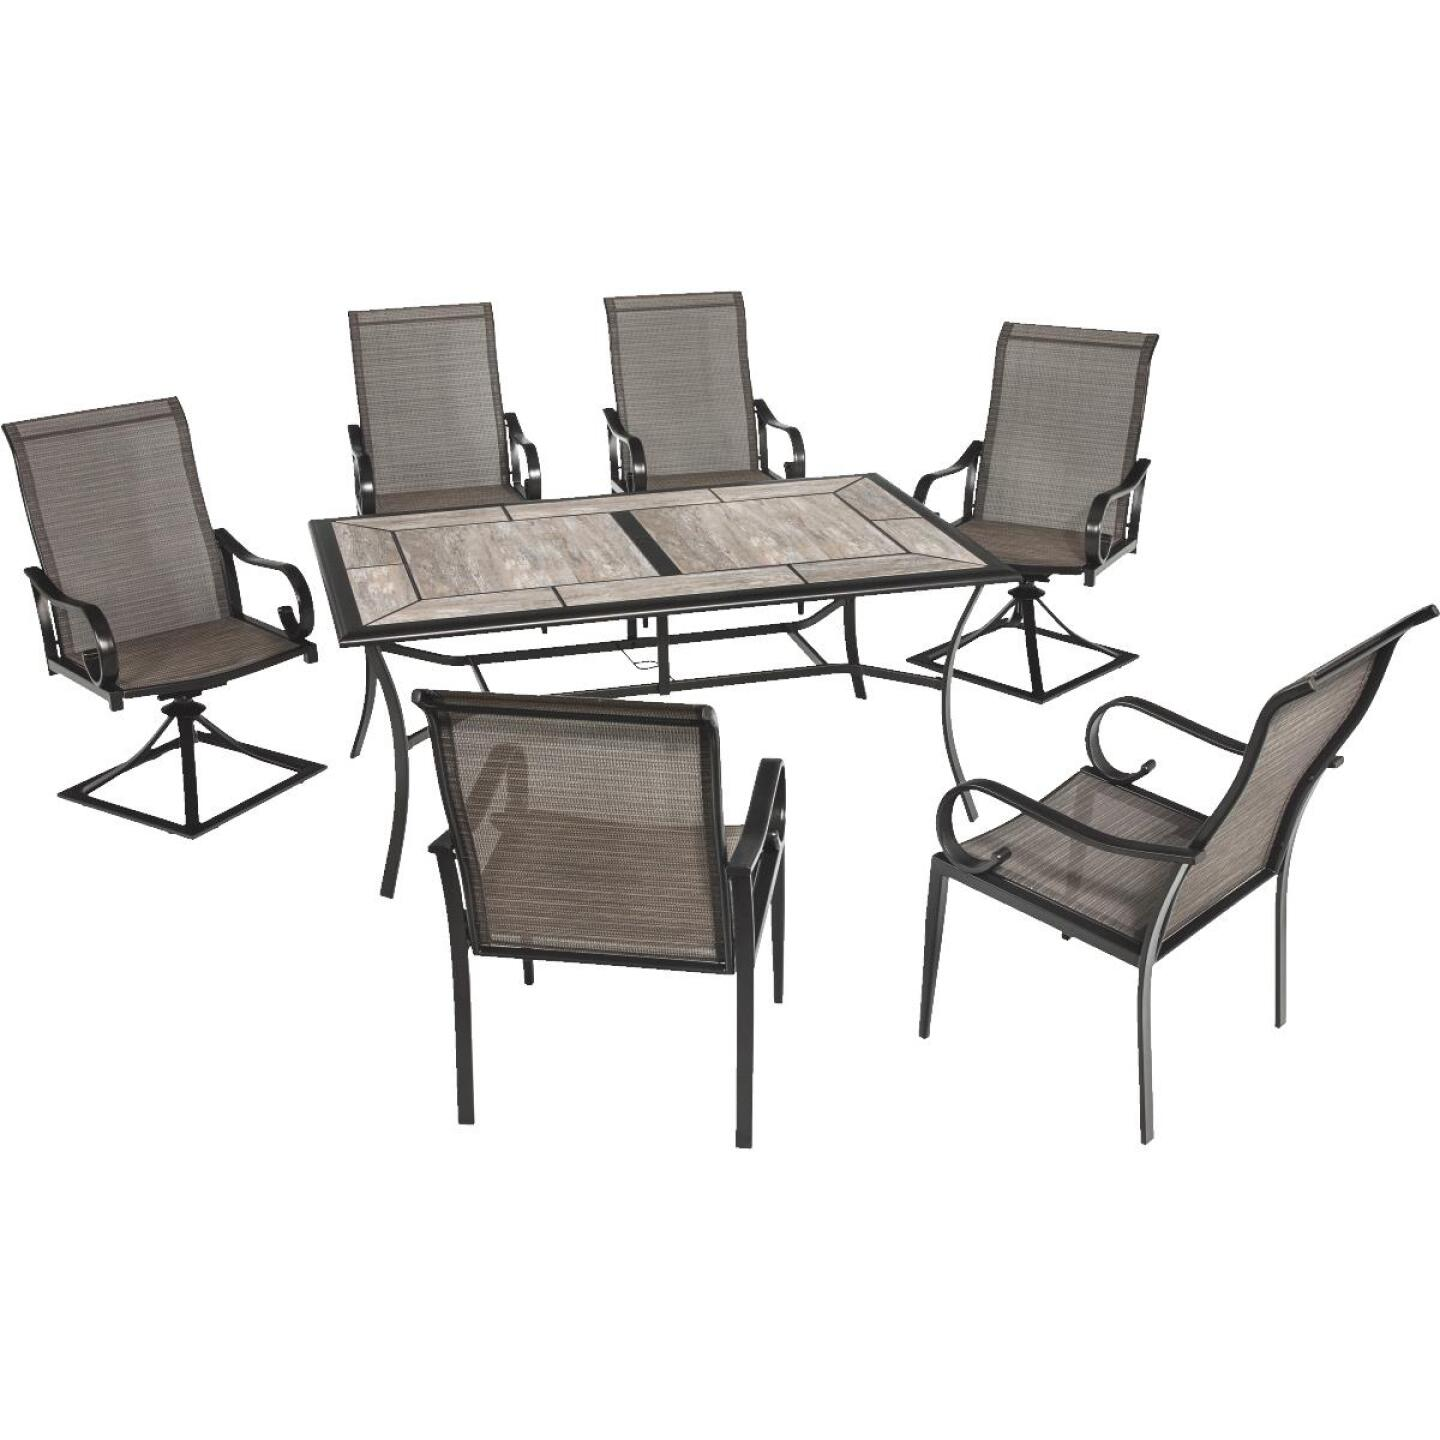 Outdoor Expressions Berkshire 7-Piece Dining Set Image 187